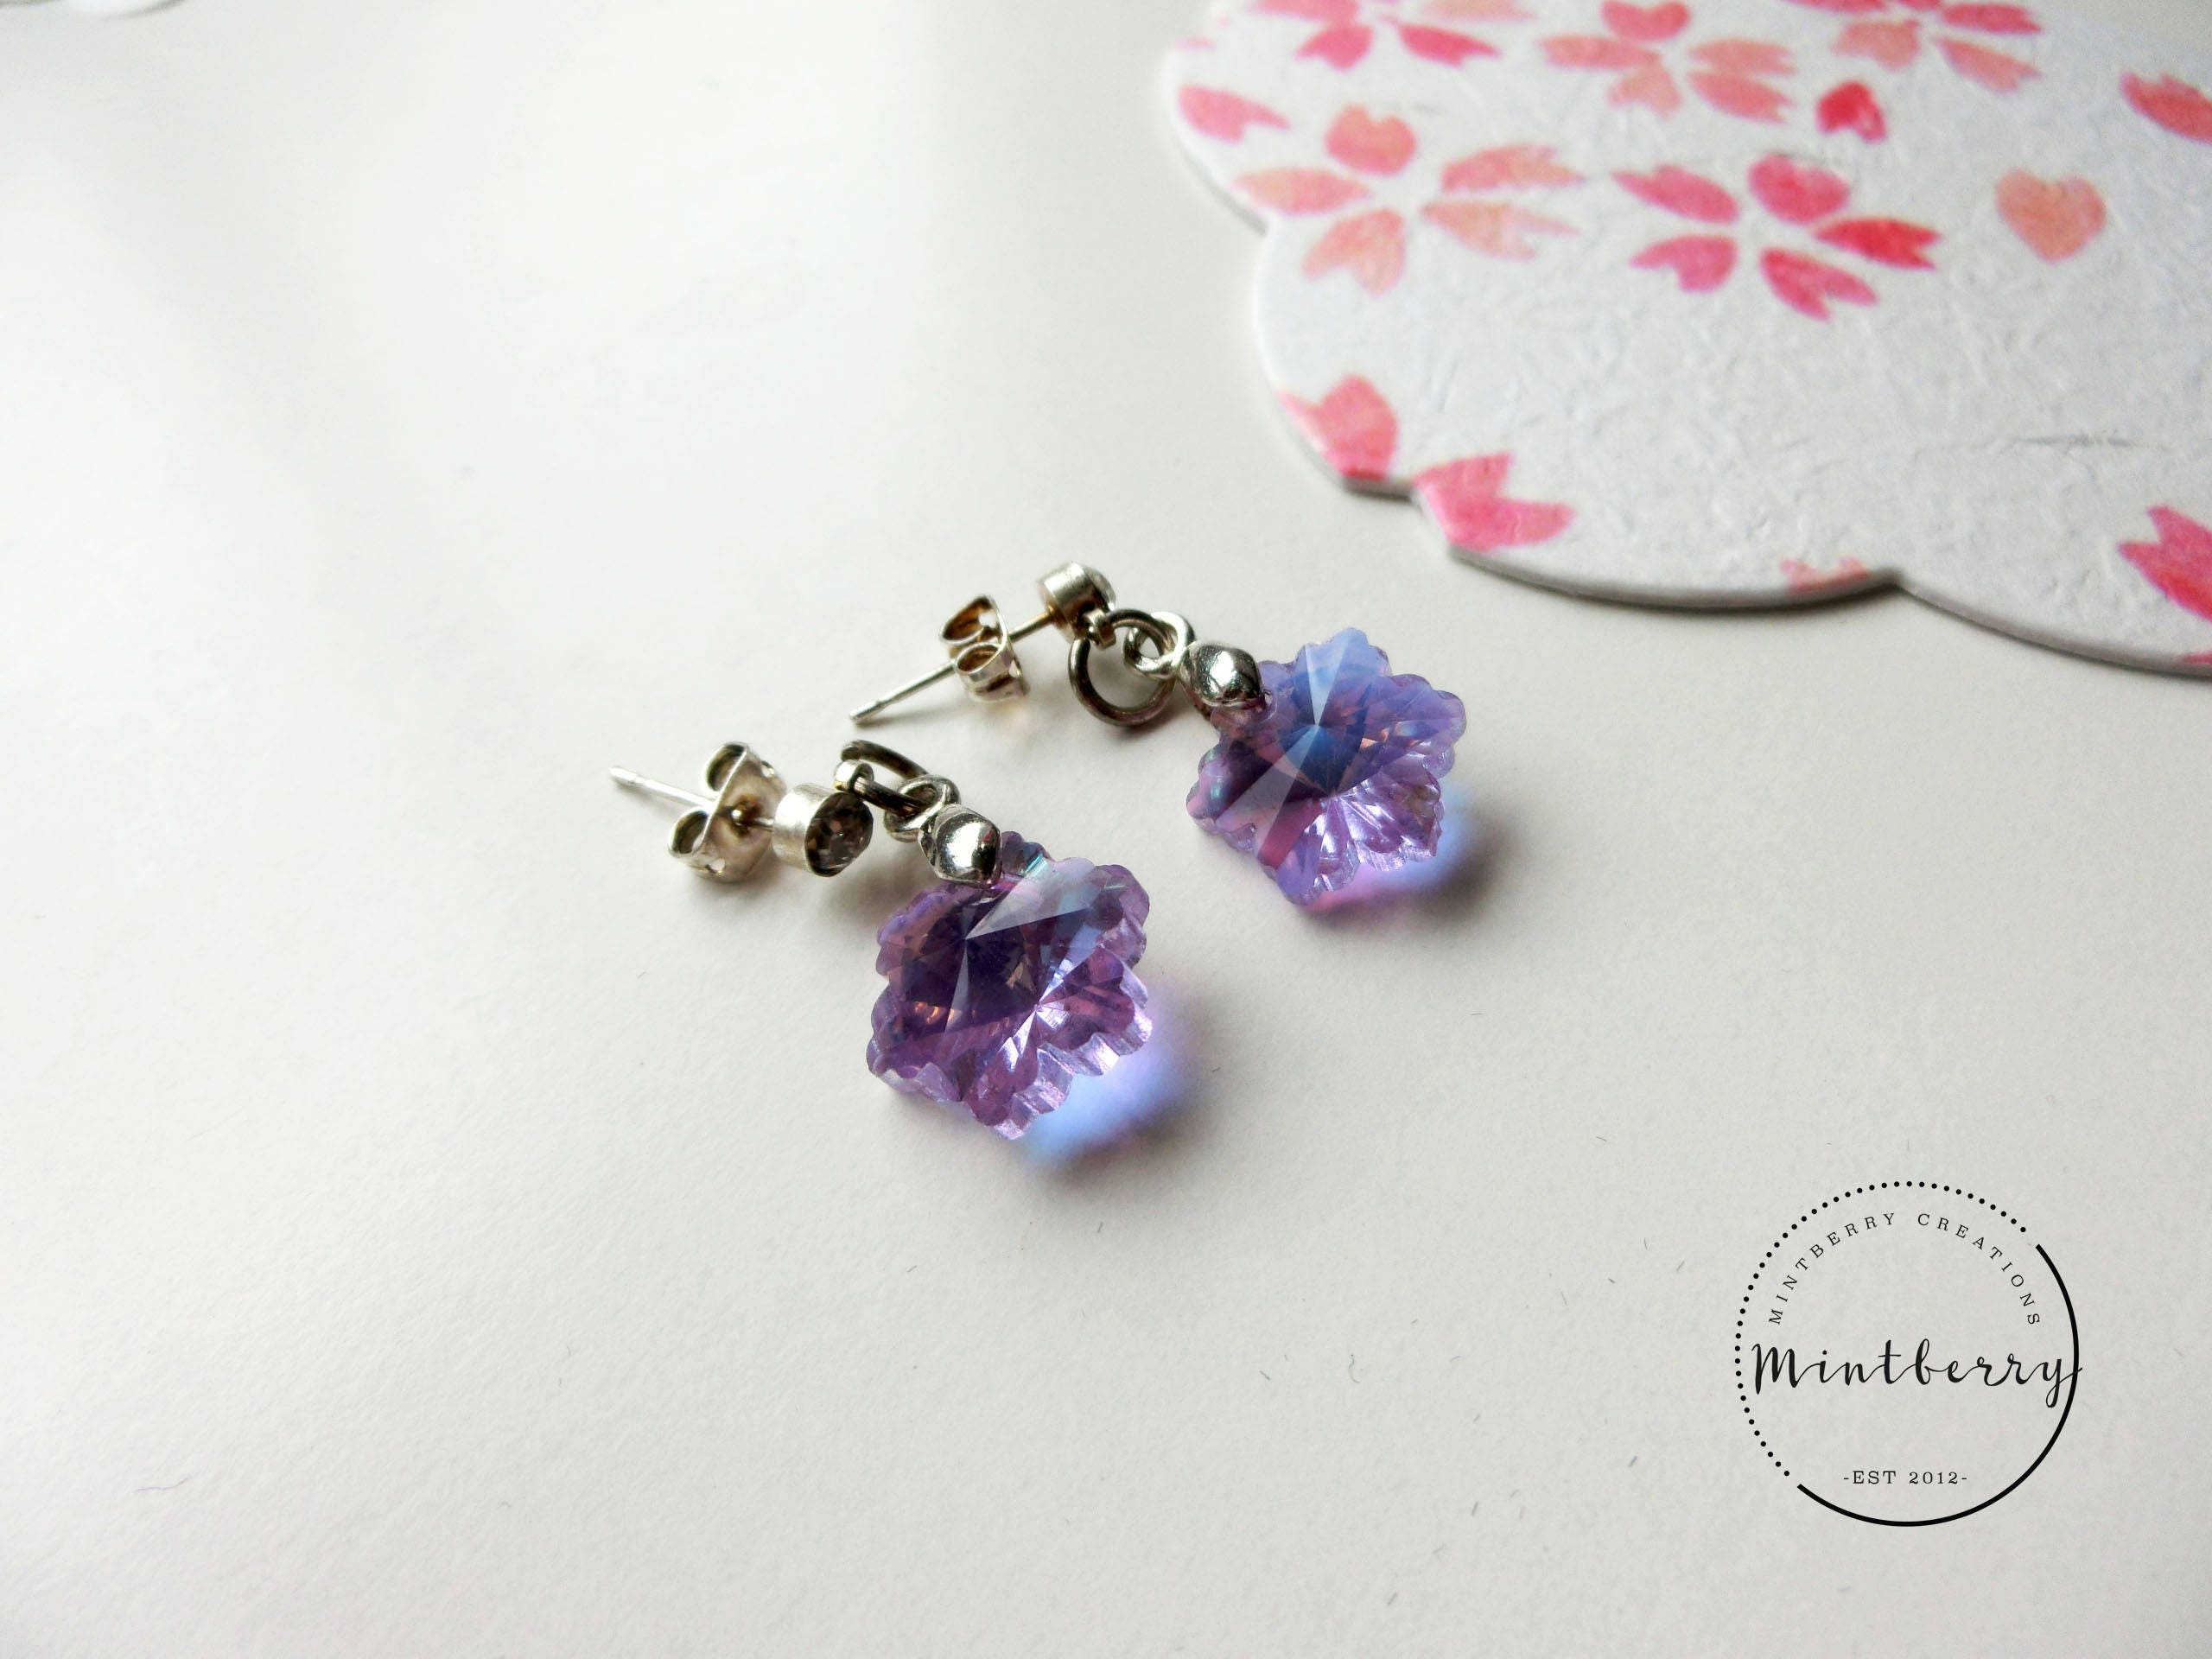 lisa flower marie grown s product petal web earrings maine purple alr